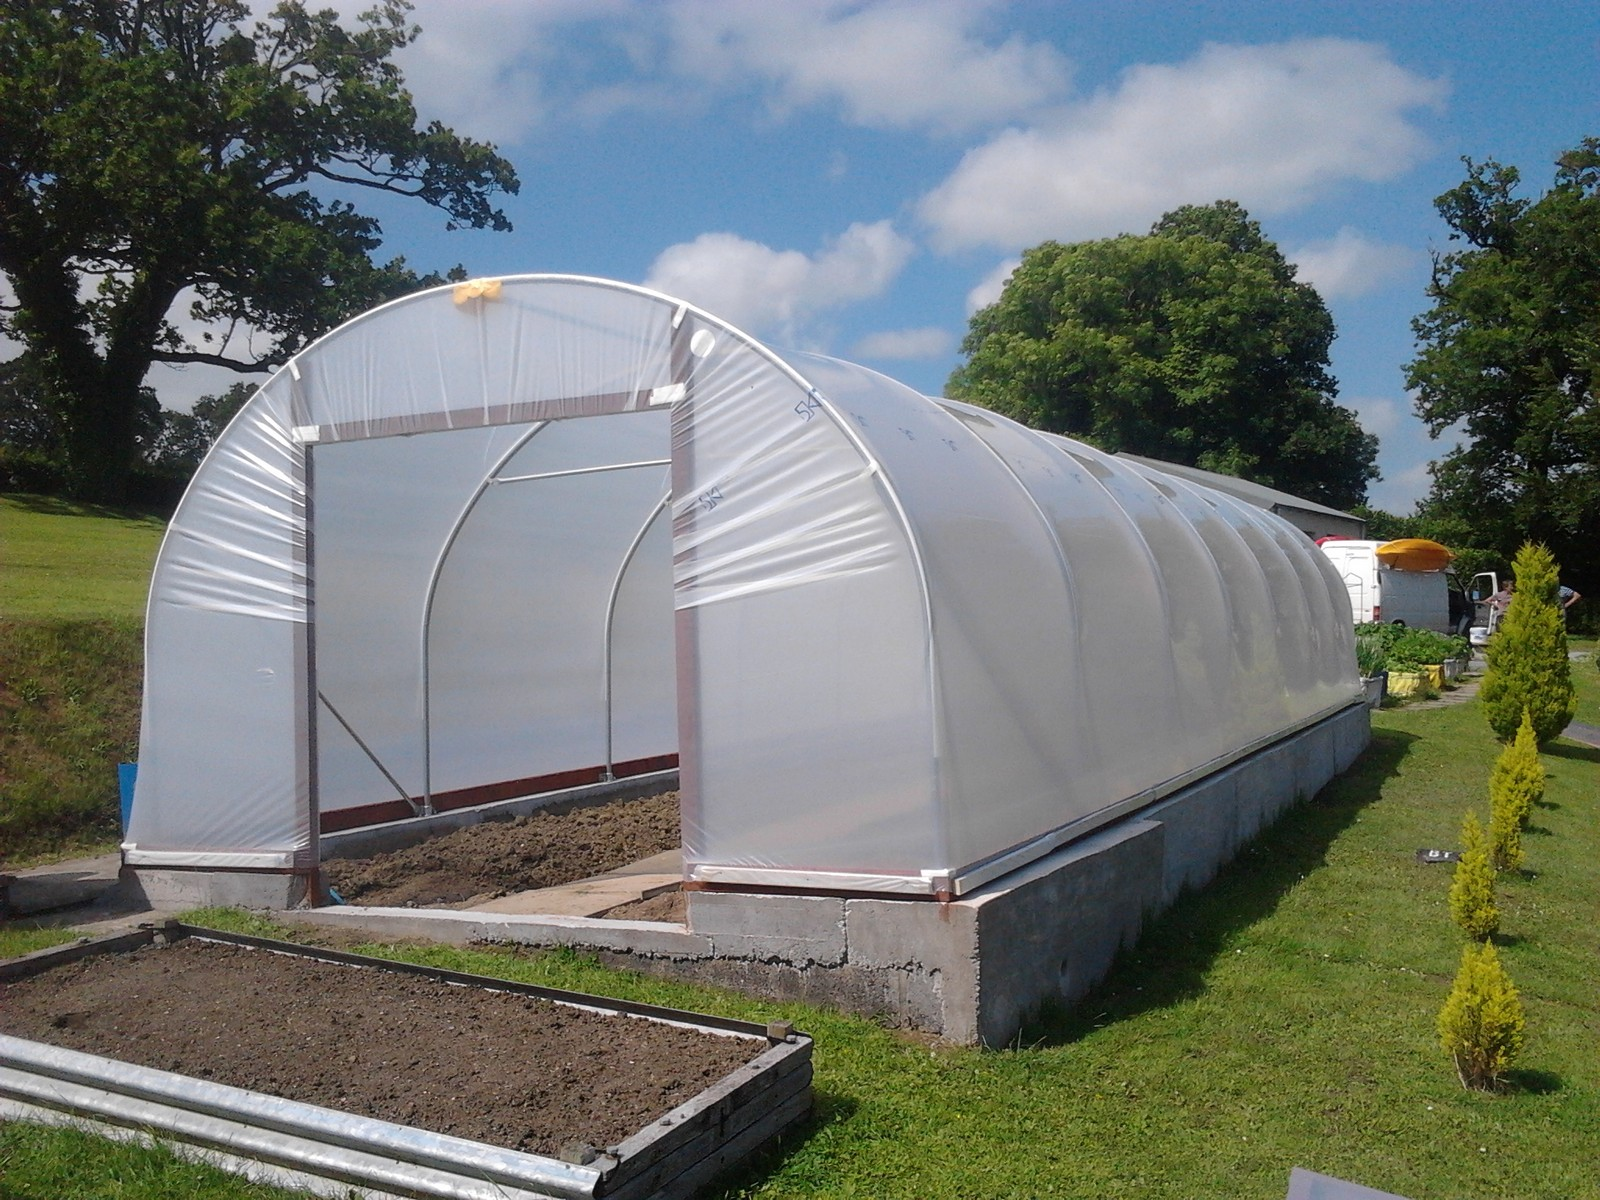 Polytunnel Gardening - Growing Vegetables In Polytunnels